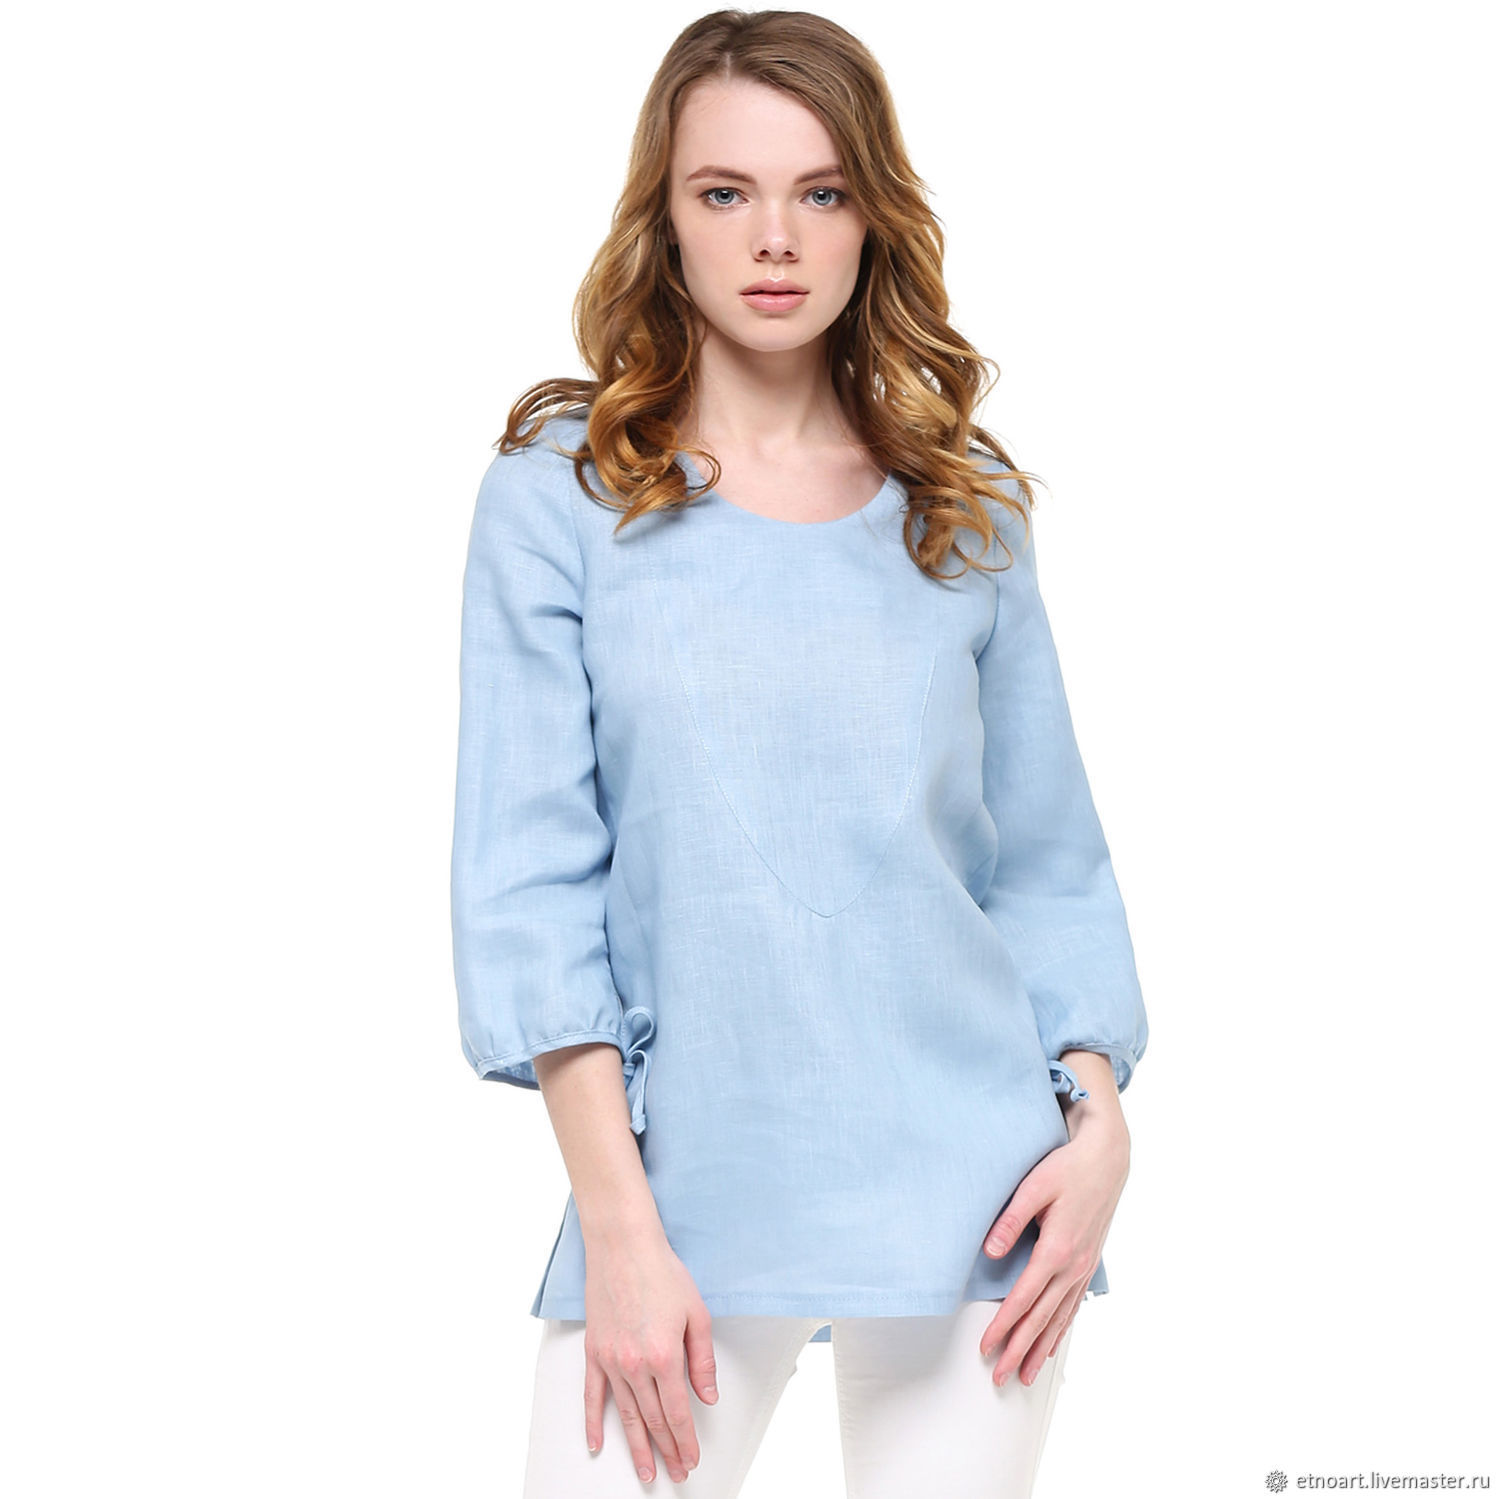 Linen tunic in romantic blue style, Blouses, Tomsk,  Фото №1